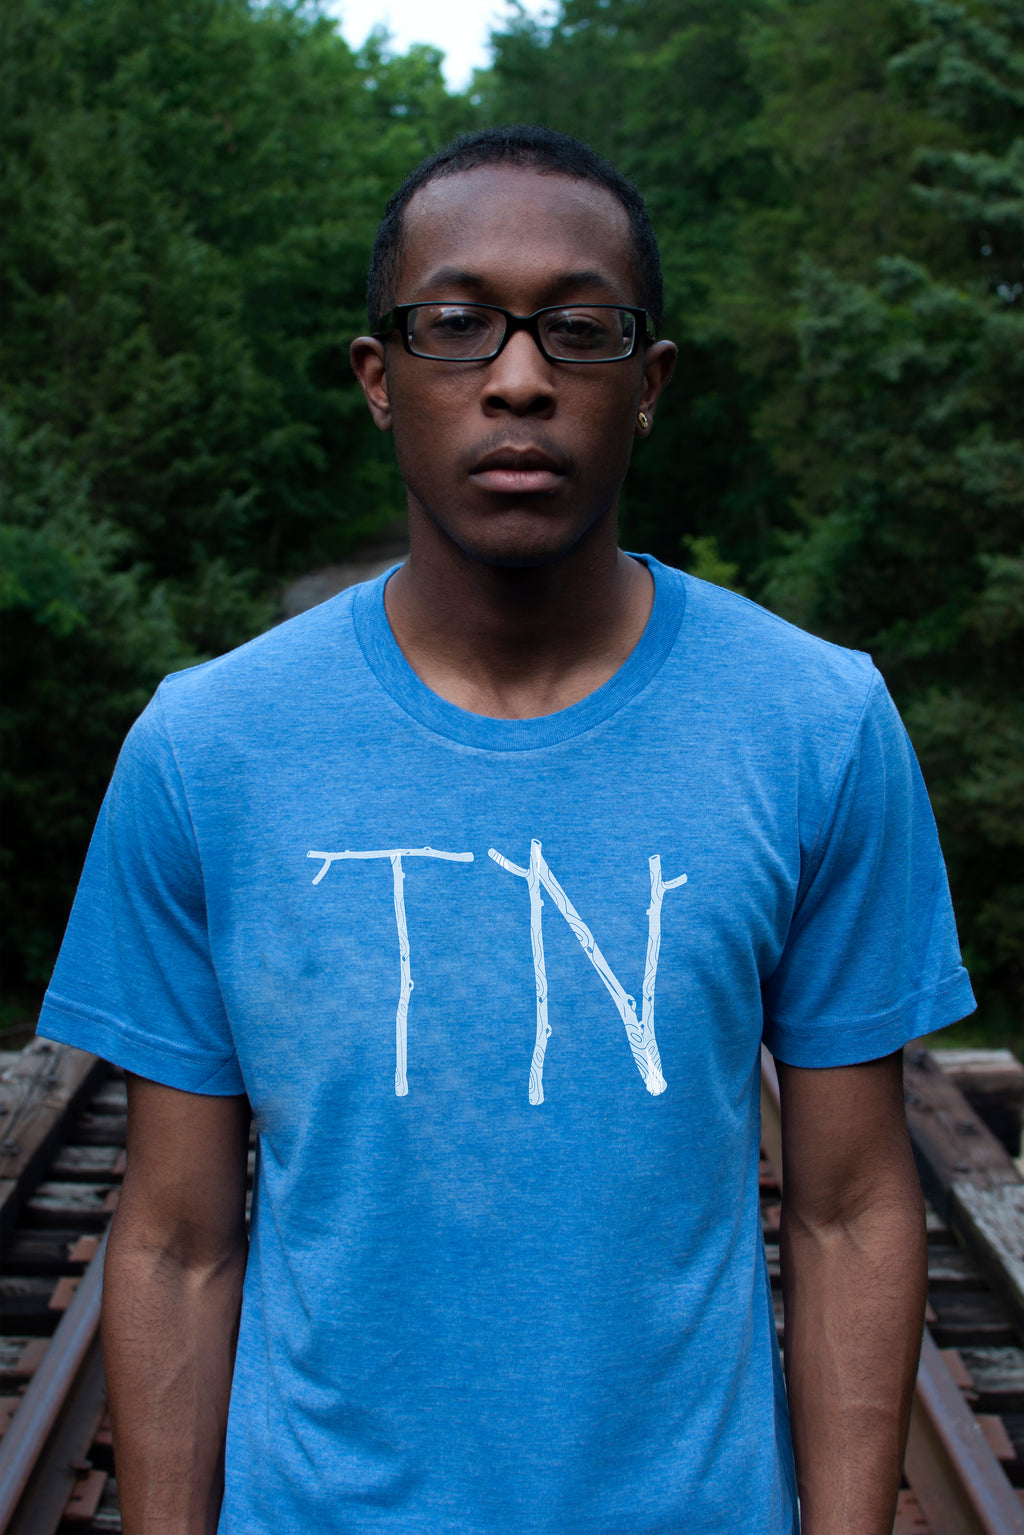 TN Sticks Short Sleeve Crew Cut Tee